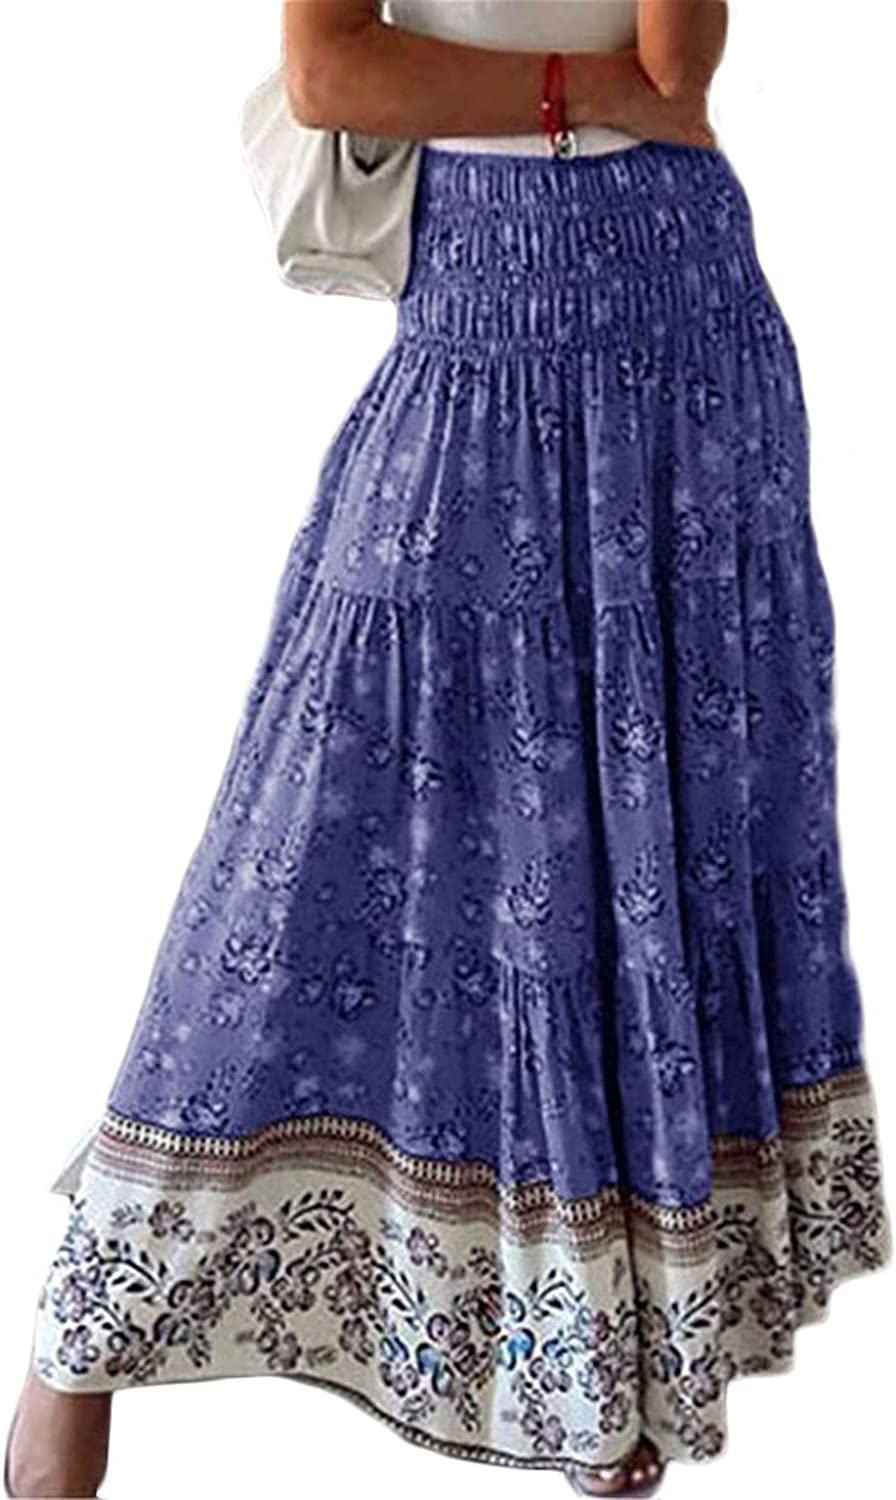 CHARTOU Women's Vintage Ruched High Waist Pleated Floral Print A-Line Long Boho Skirt